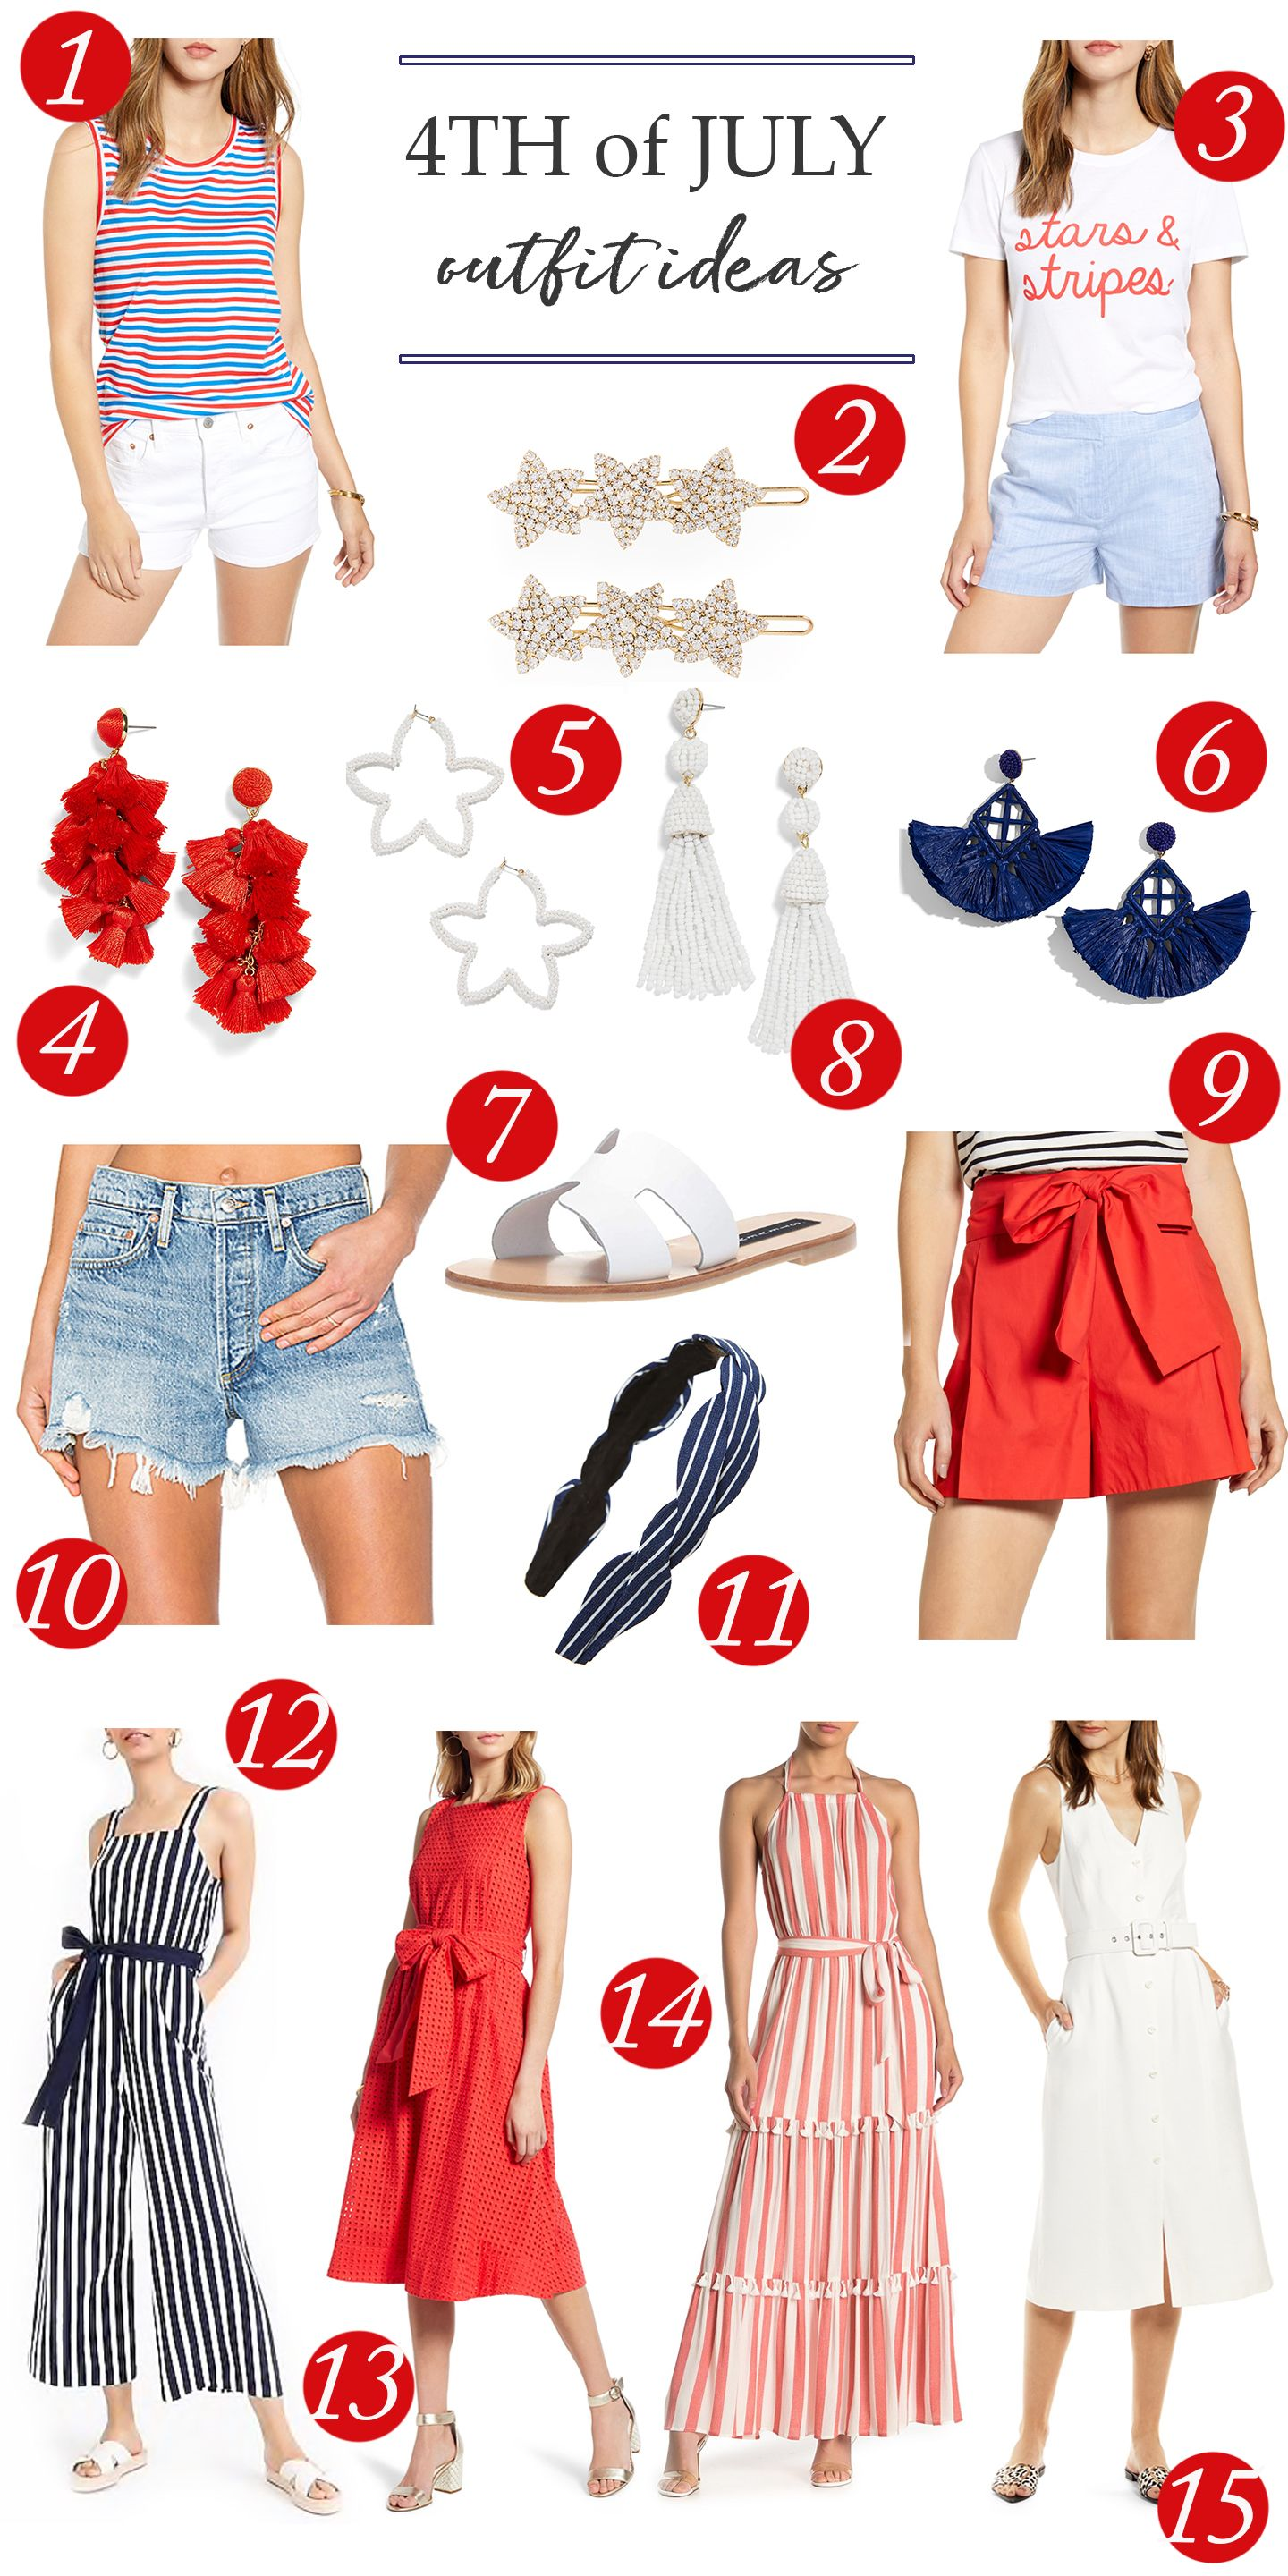 Festive Outfits For The 4th Of July Spring Outfits Casual Festival Outfits Clothes For Women